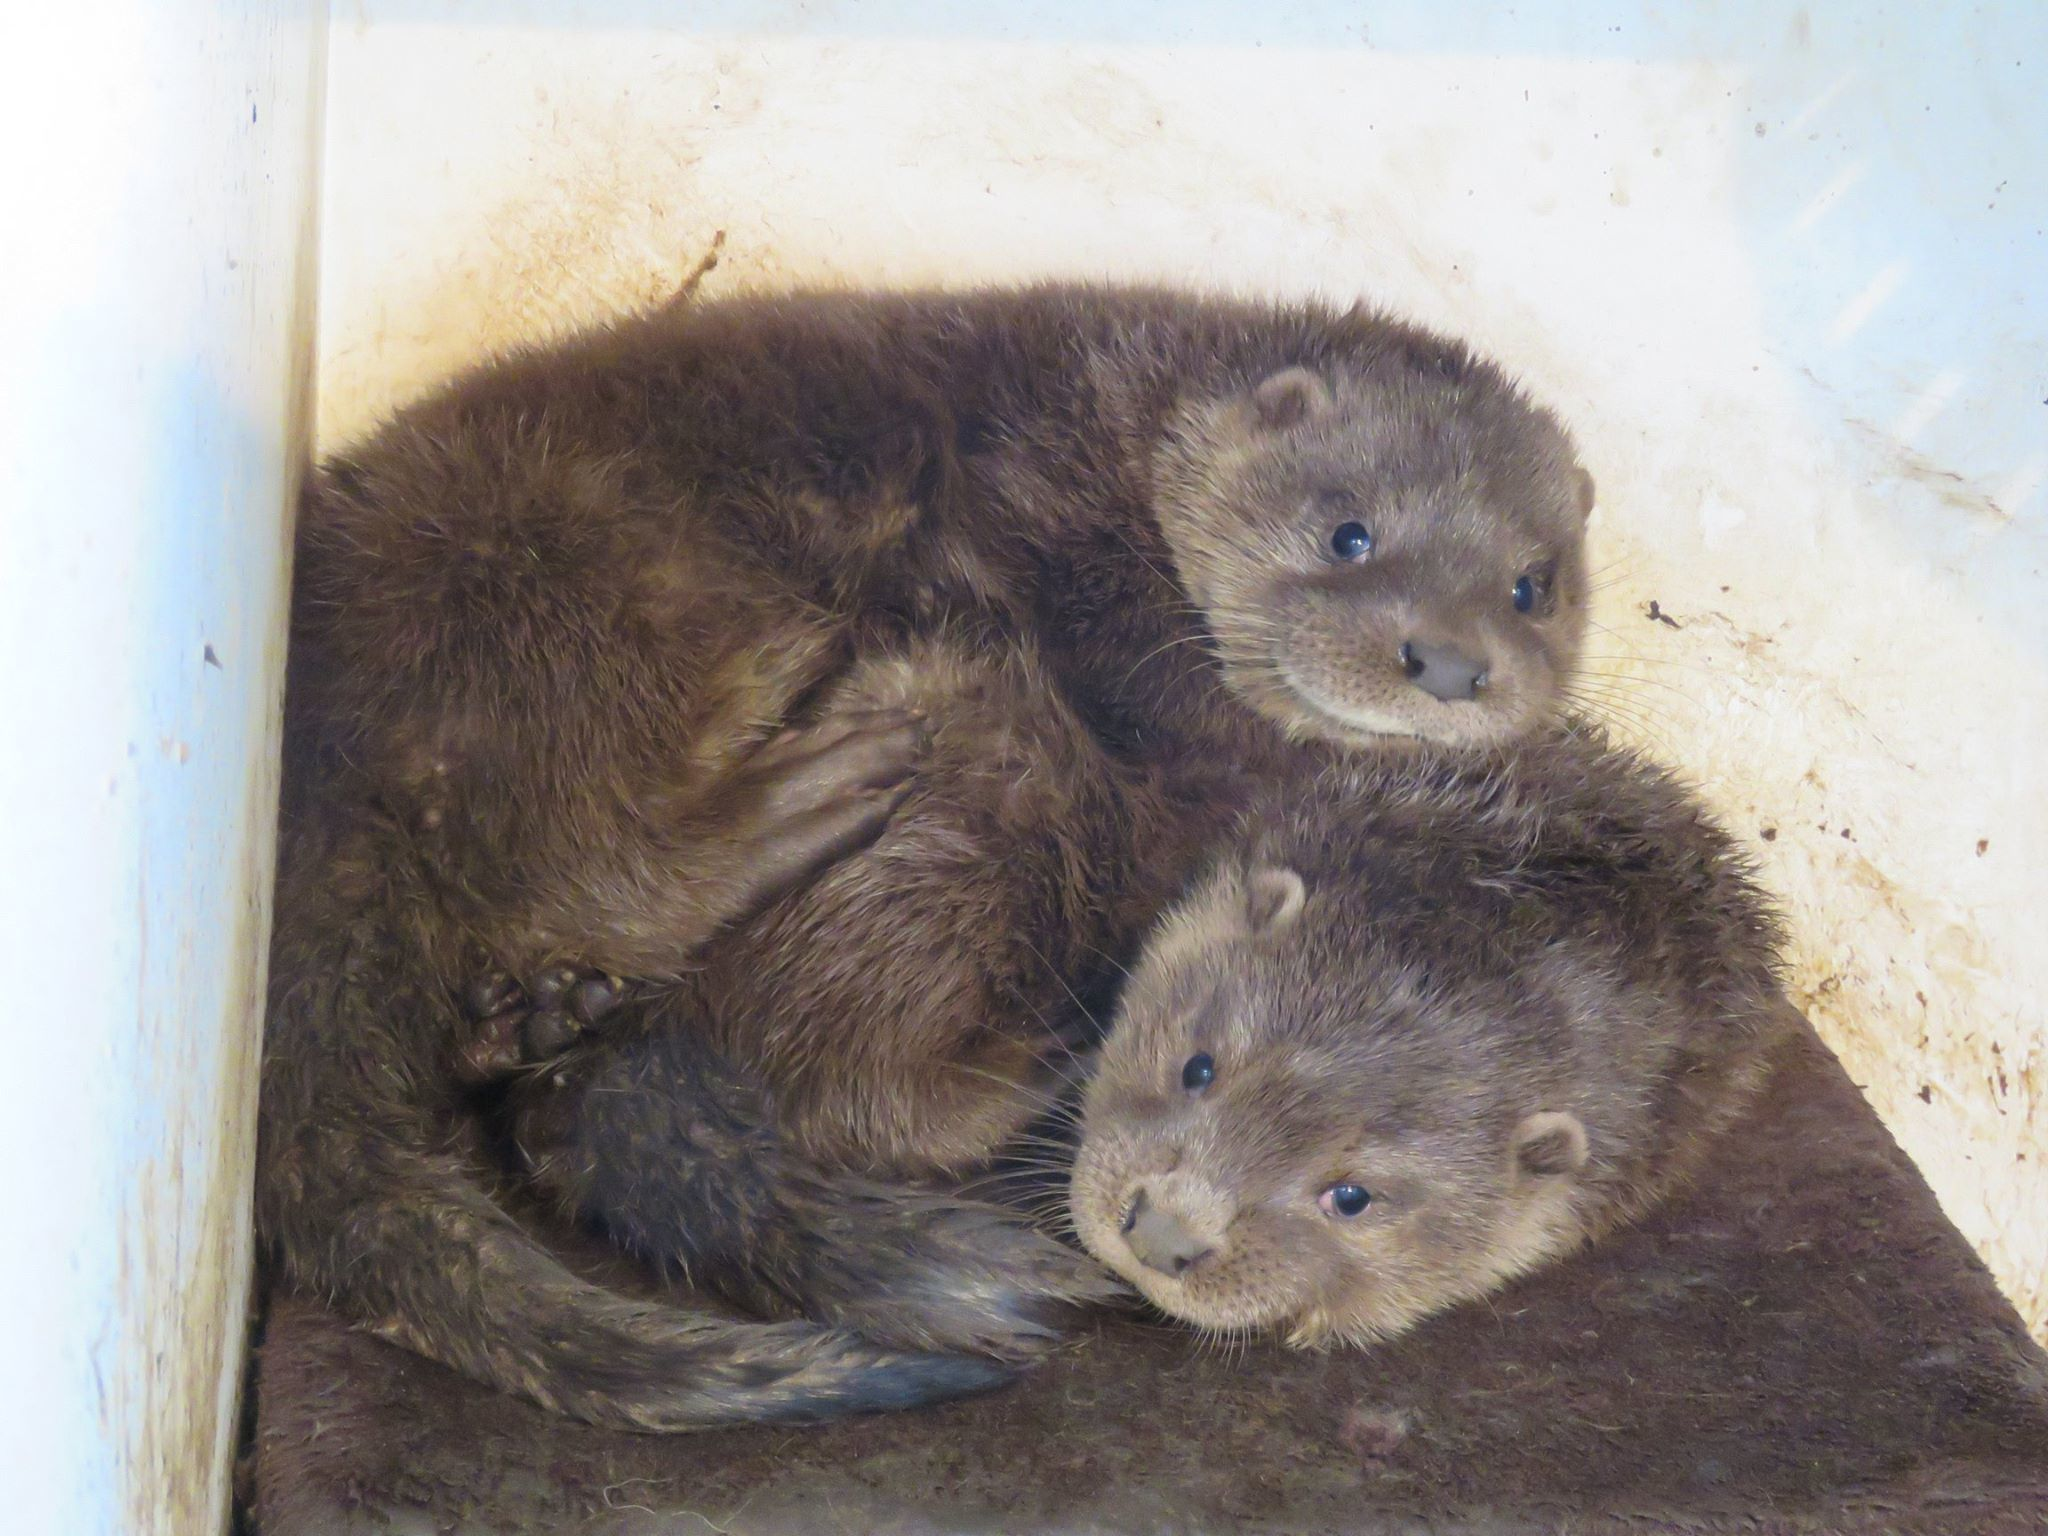 Dee and Don the rescued otters at the New Arc, Ellon. (photo by Mel Noble)